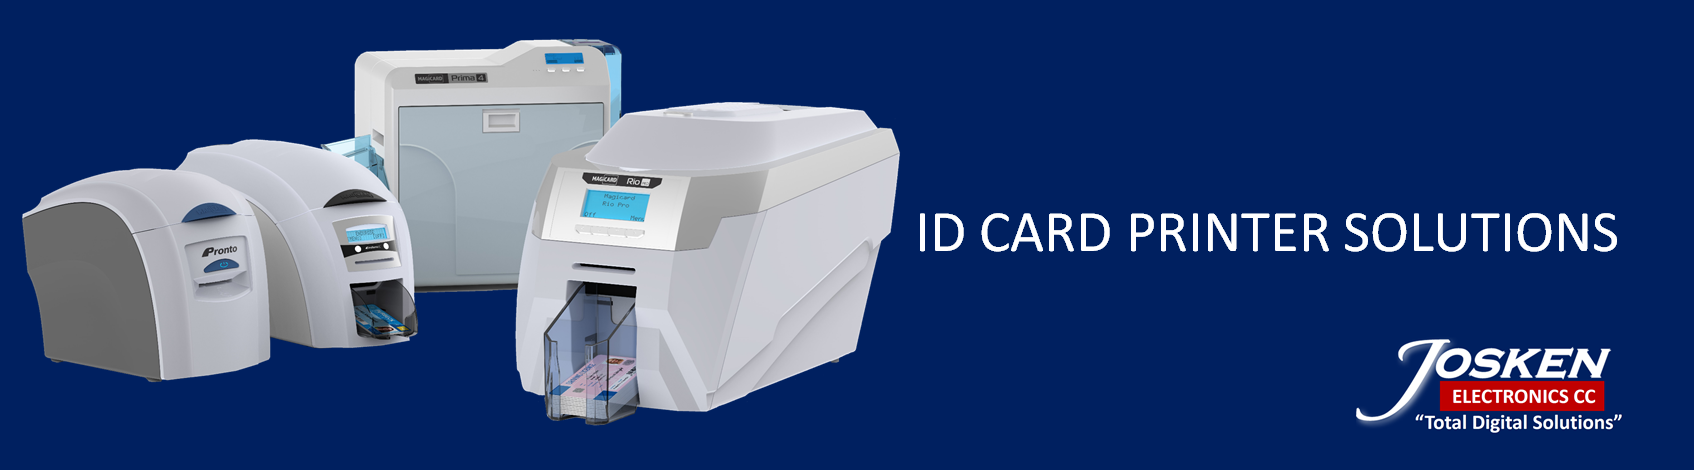 ID CARD PRINTER BANNER